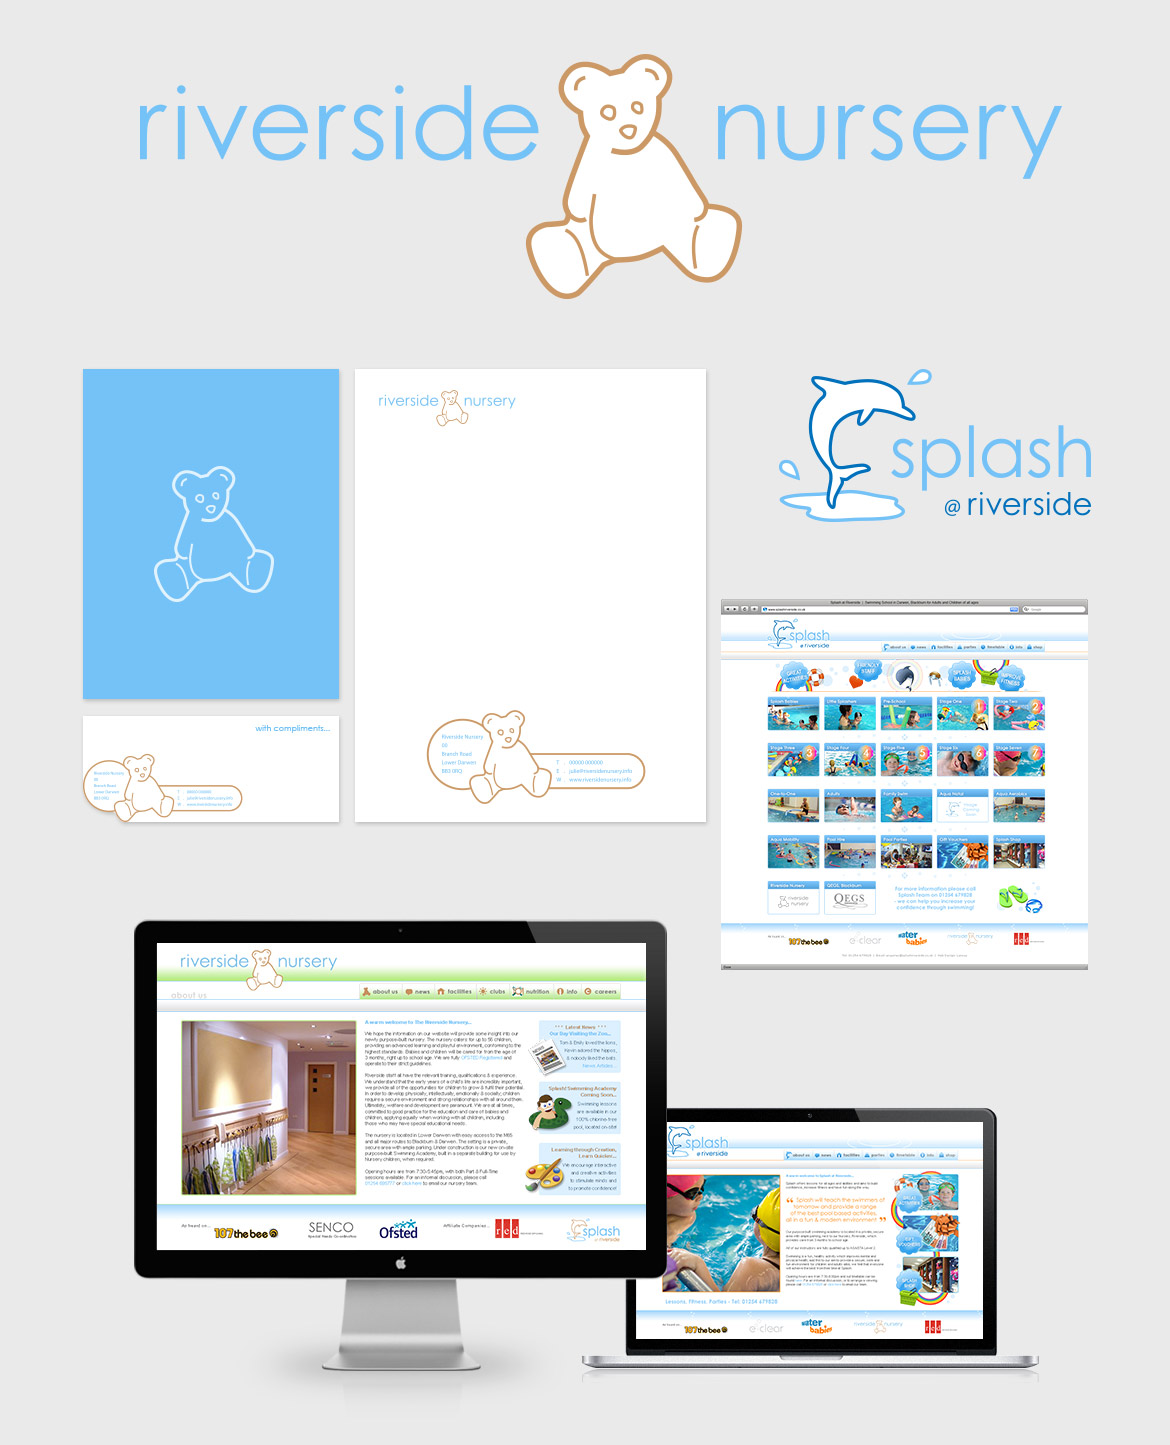 Riverside Nursery & Splash - Branding & Web Design